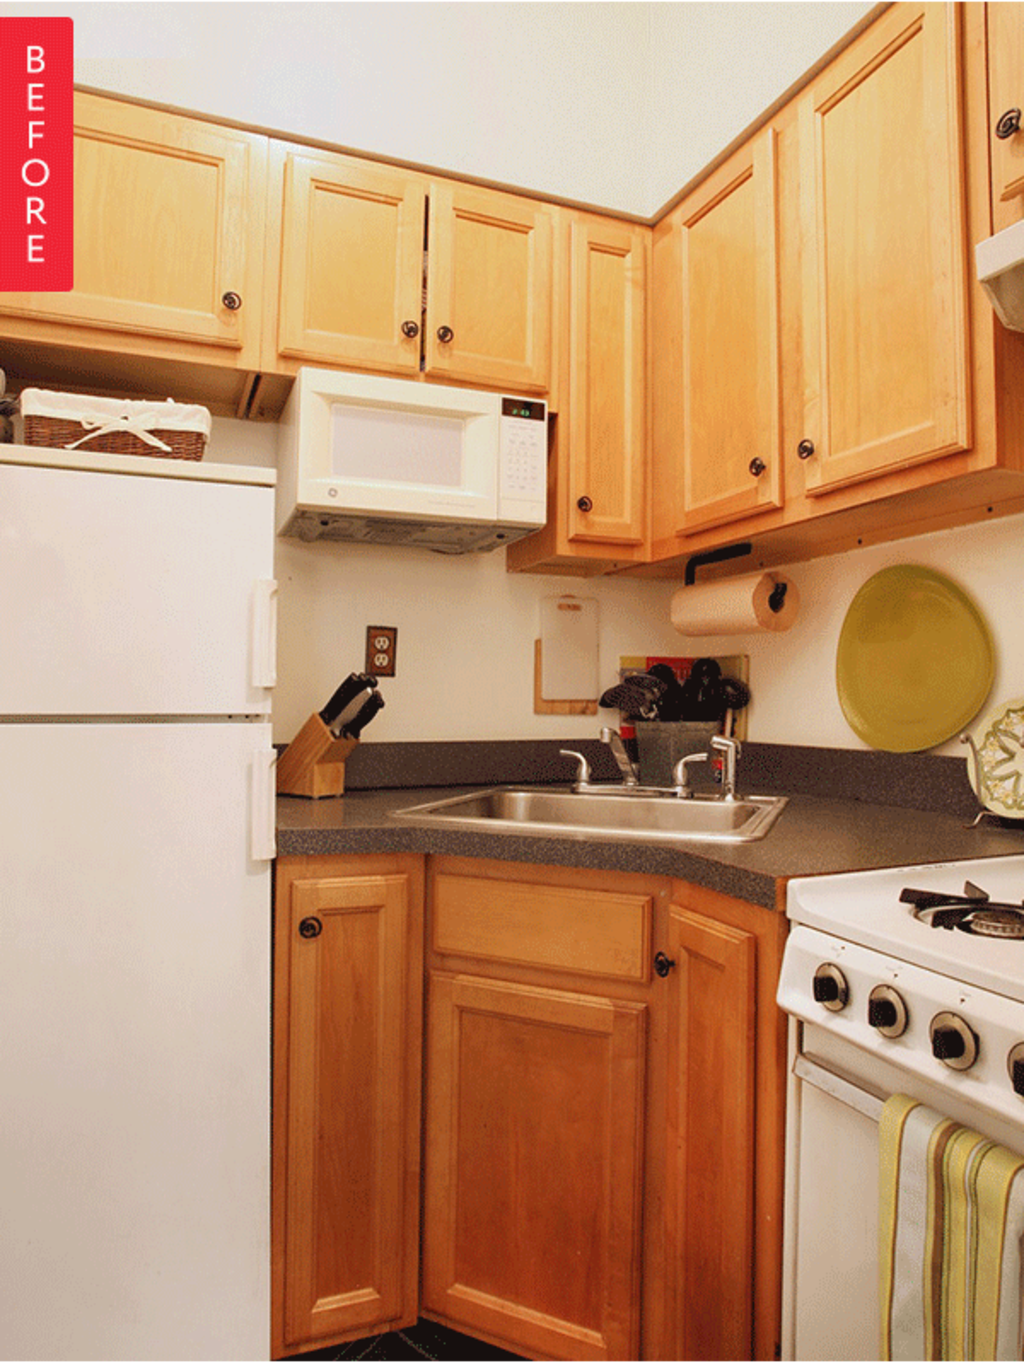 Before & After: A Teeny-Tiny Kitchen Gets Some Serious Style